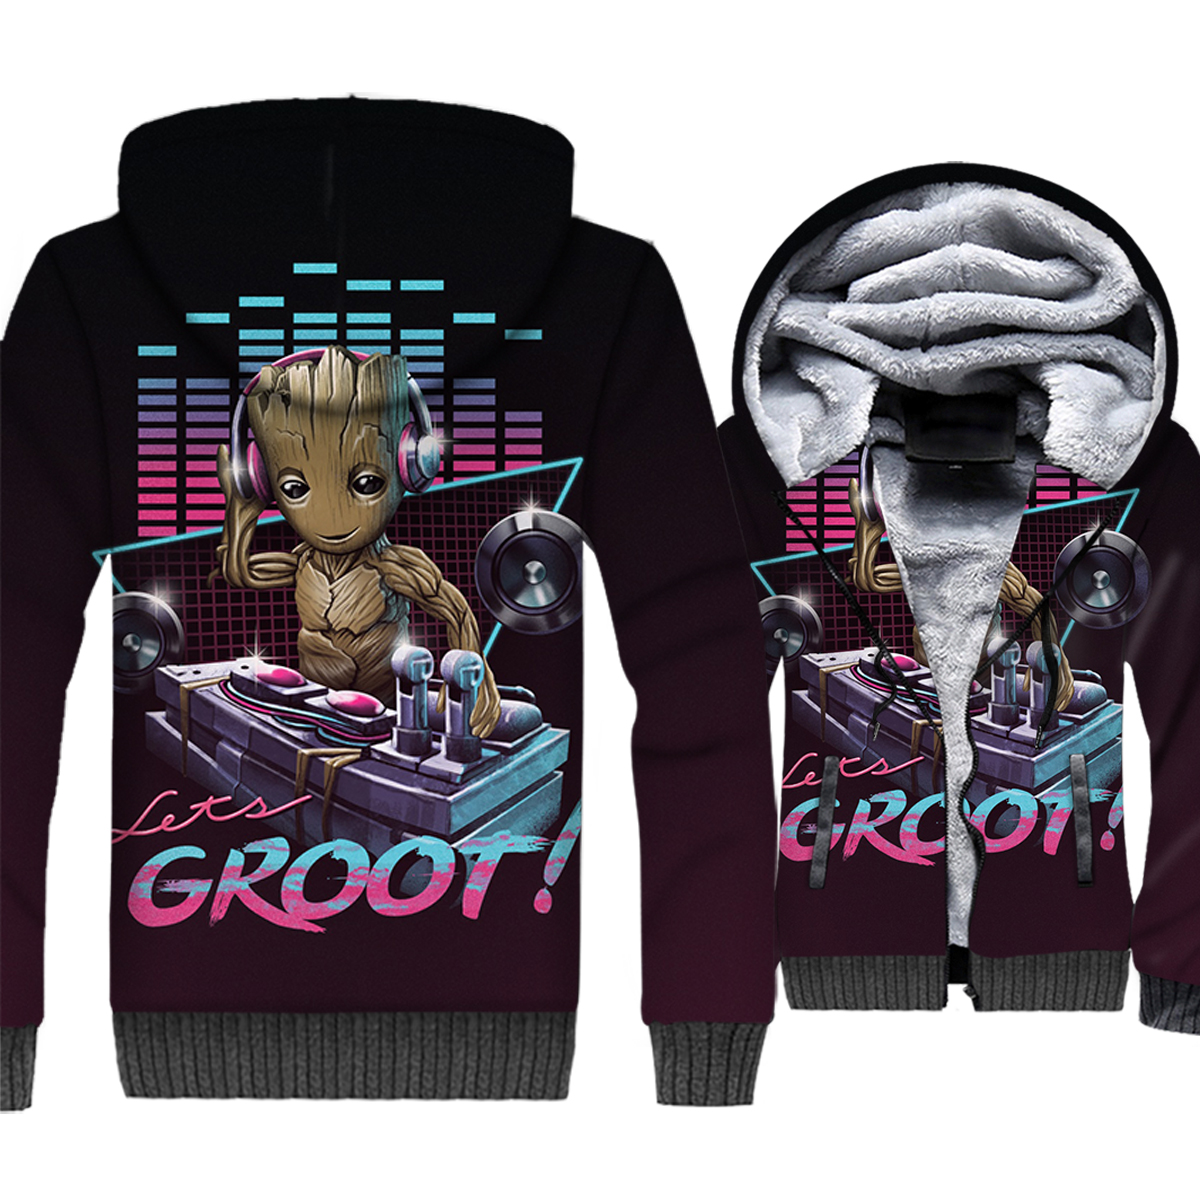 Music DJ Groot Funny 3D Print Jackets Male Hoody I 39 M GROOT Sweatshirts Men 2018 Autumn Winter Thick Coats Harajuku Men 39 s Hoodies in Hoodies amp Sweatshirts from Men 39 s Clothing